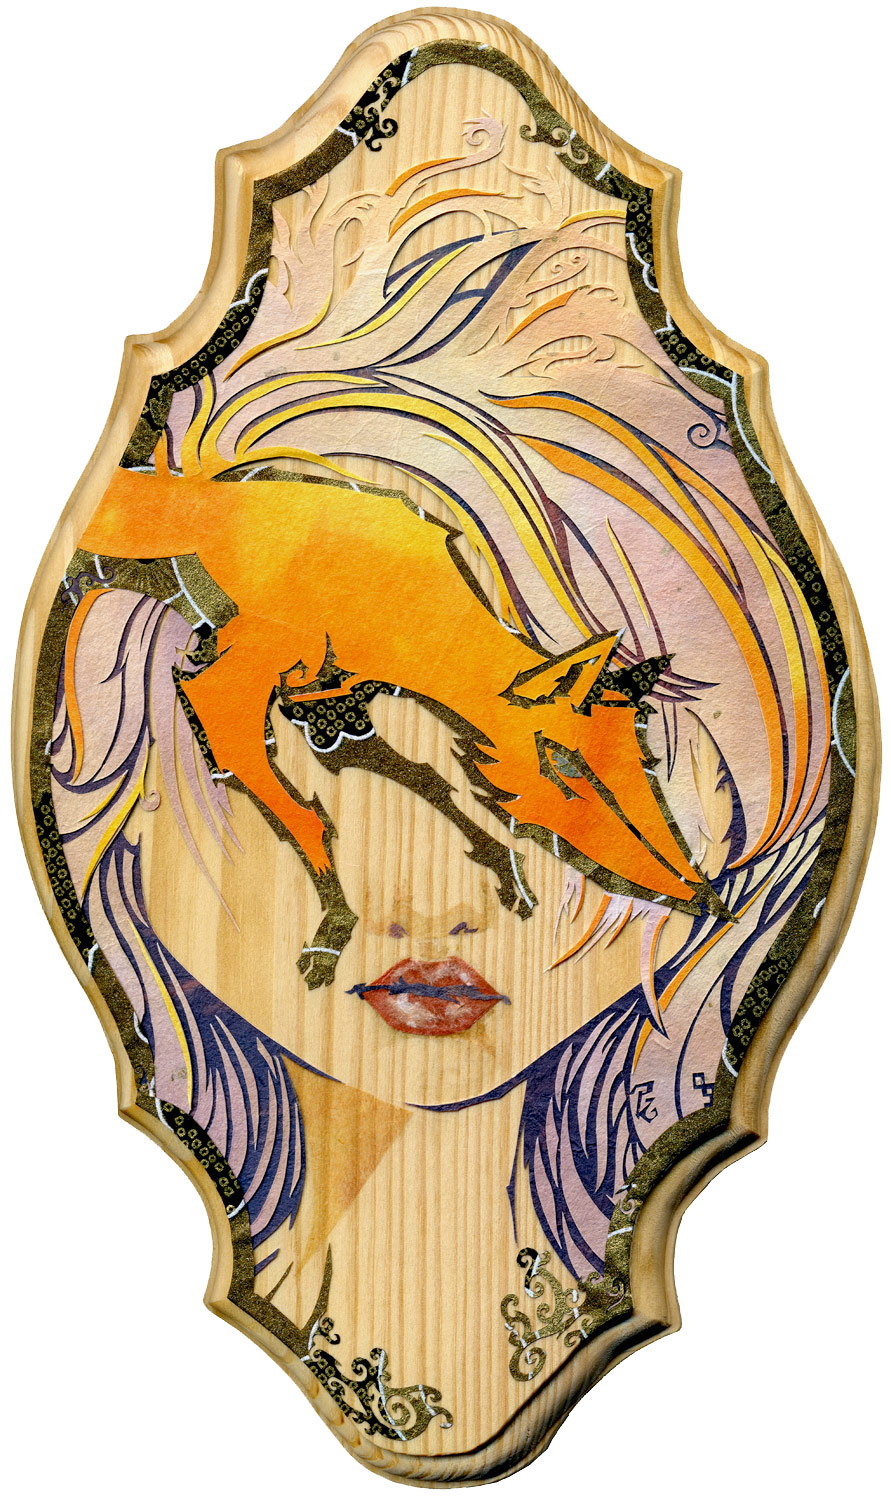 ⊛  Vixen (Inari)   ⊛ cut and torn paper on wood  ⊛ 11.5 x 6.75 in • 290 x 172 mm  ⊛ private collection